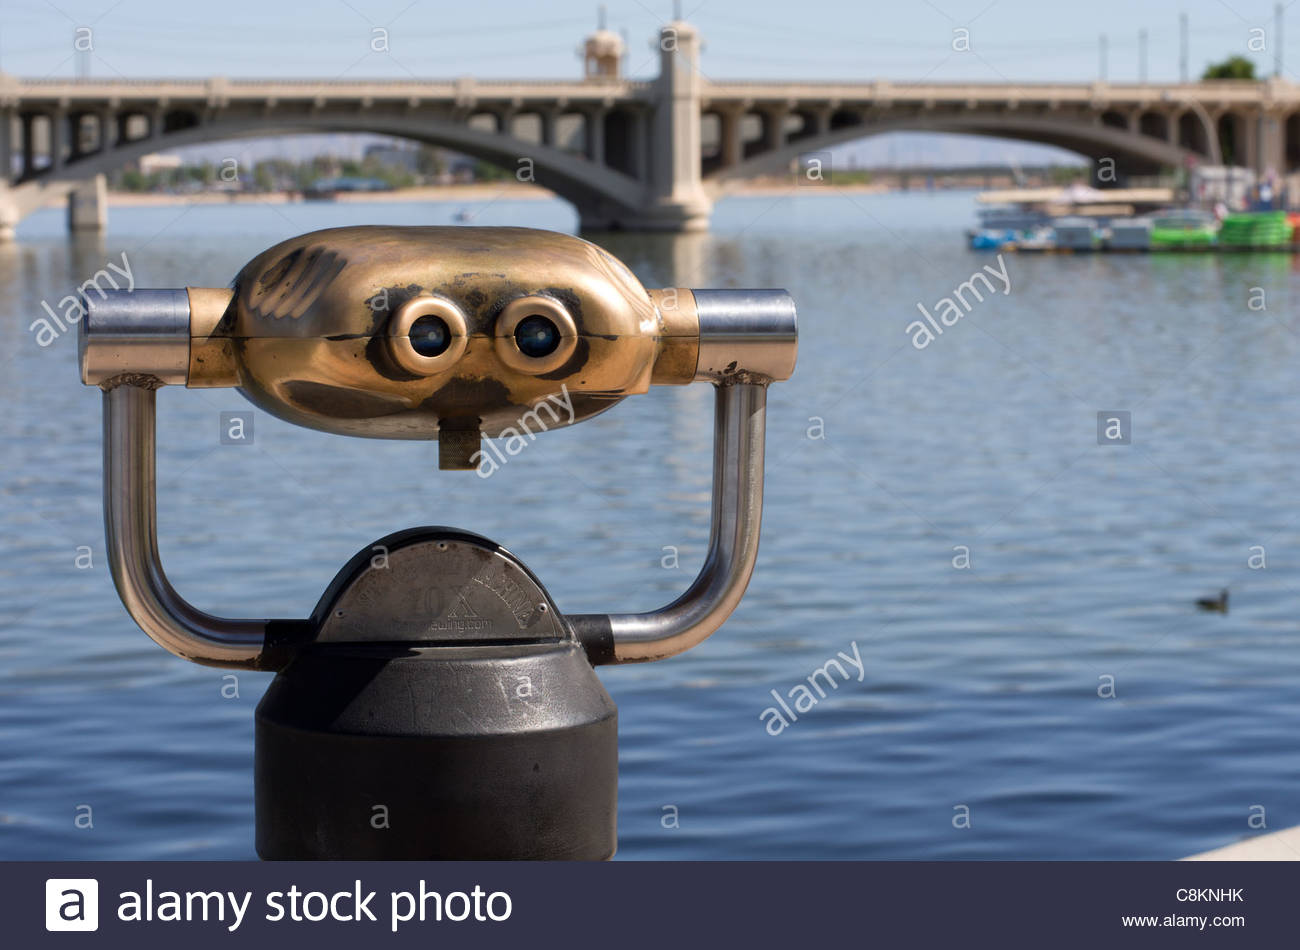 Coin-operated binoculars look out over Tempe Town Lake and the Mill Avenue Bridge in Tempe, Arizona. - Stock Image